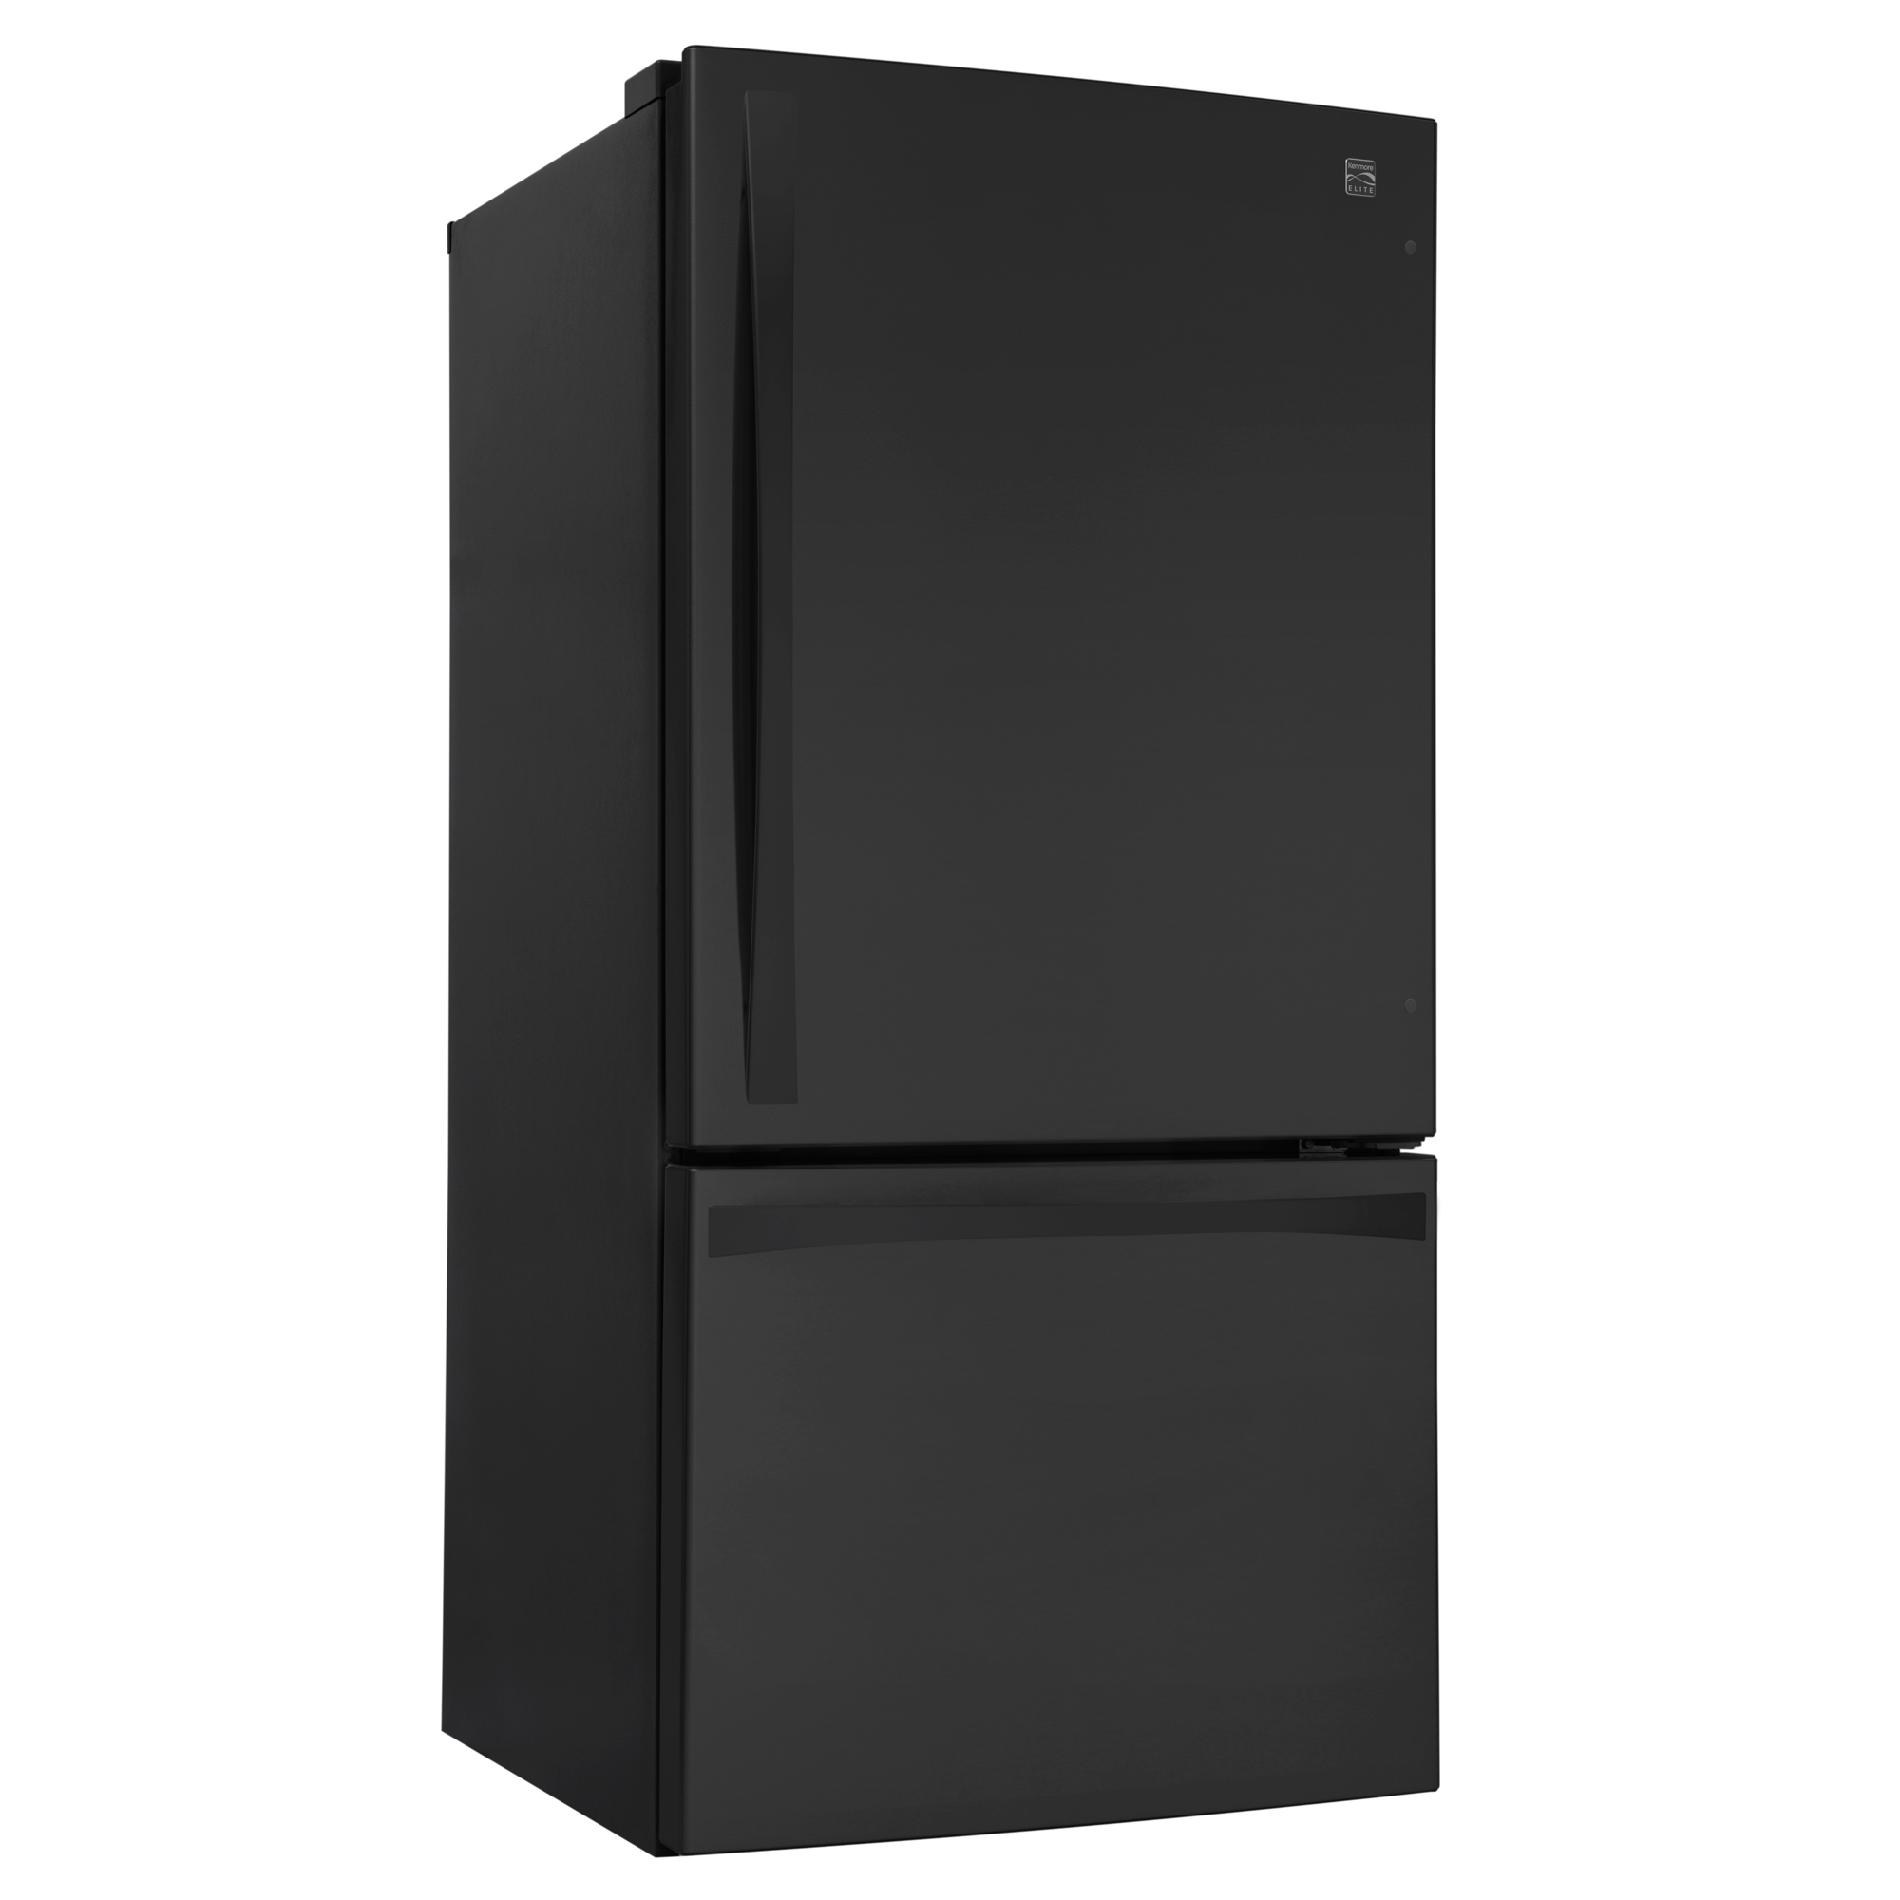 Kenmore Elite 79049 24.1 cu. ft. Bottom-Freezer Refrigerator - Black